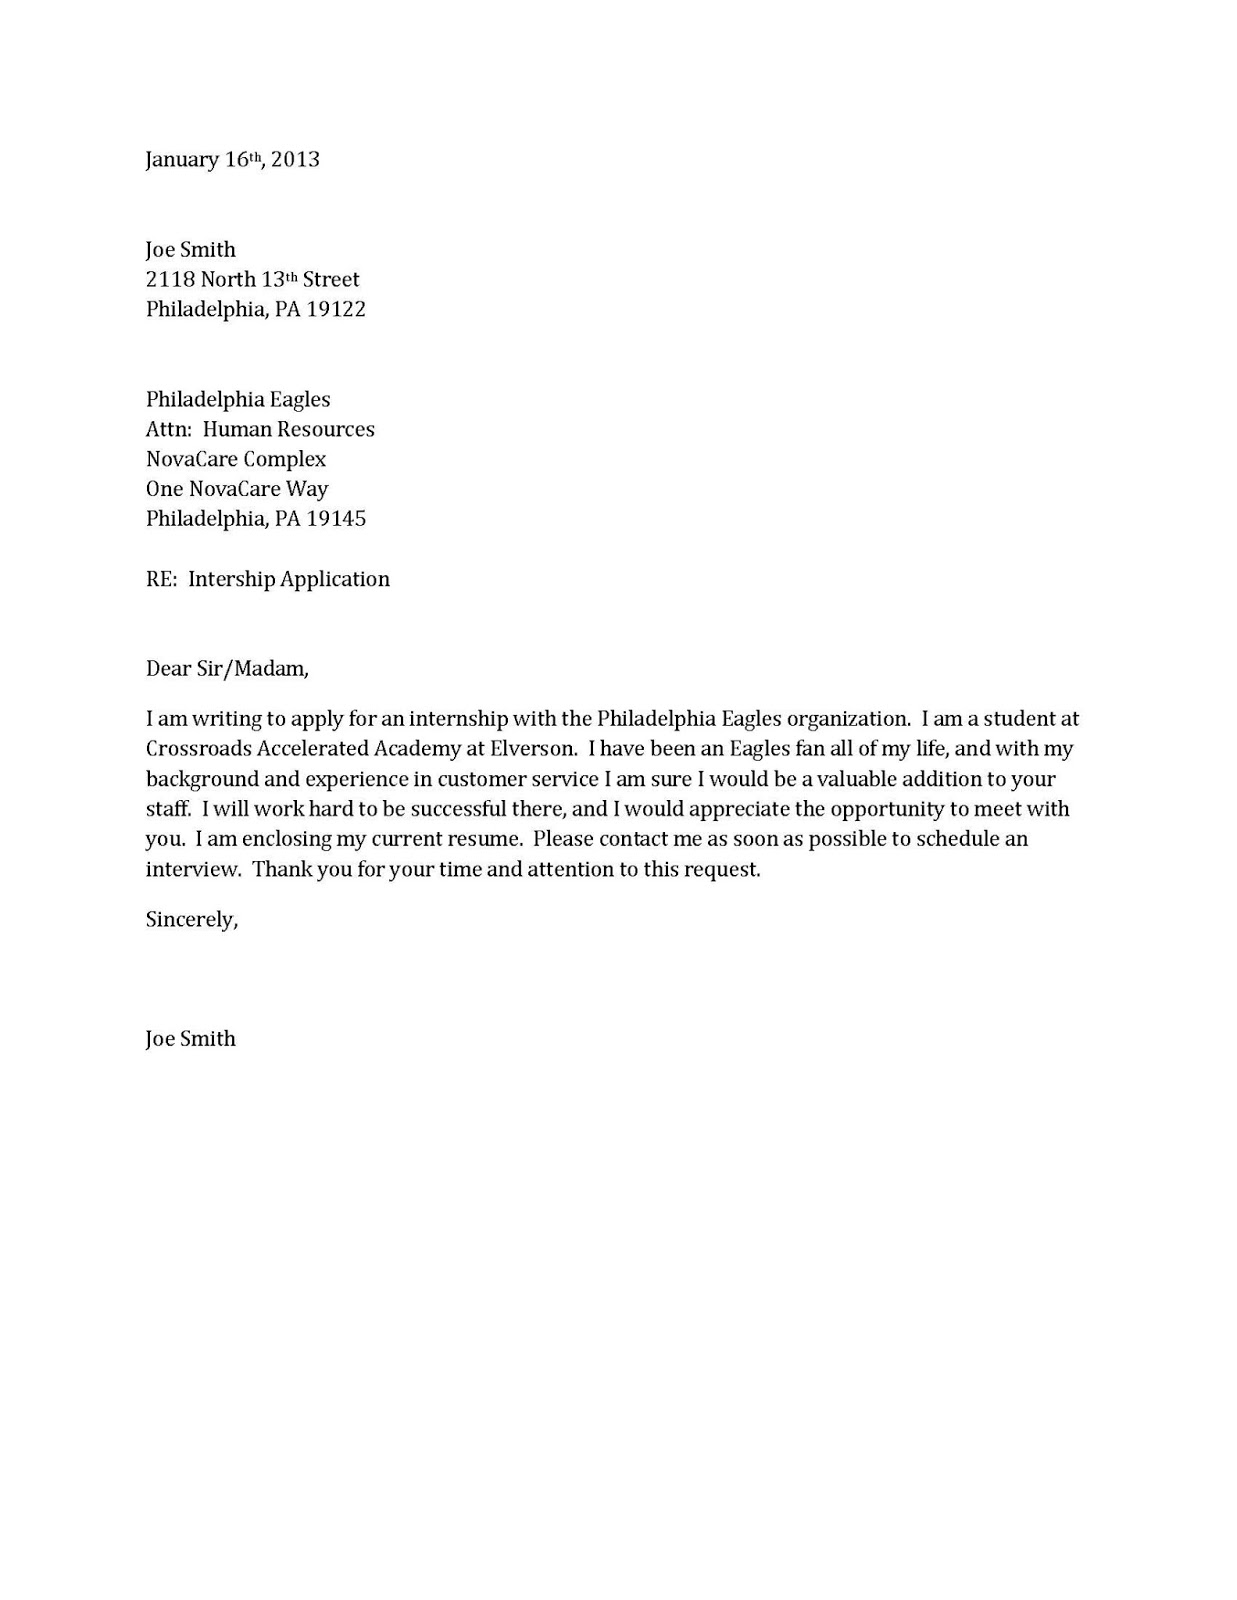 best free professional application letter samples. doc 12751650 ...